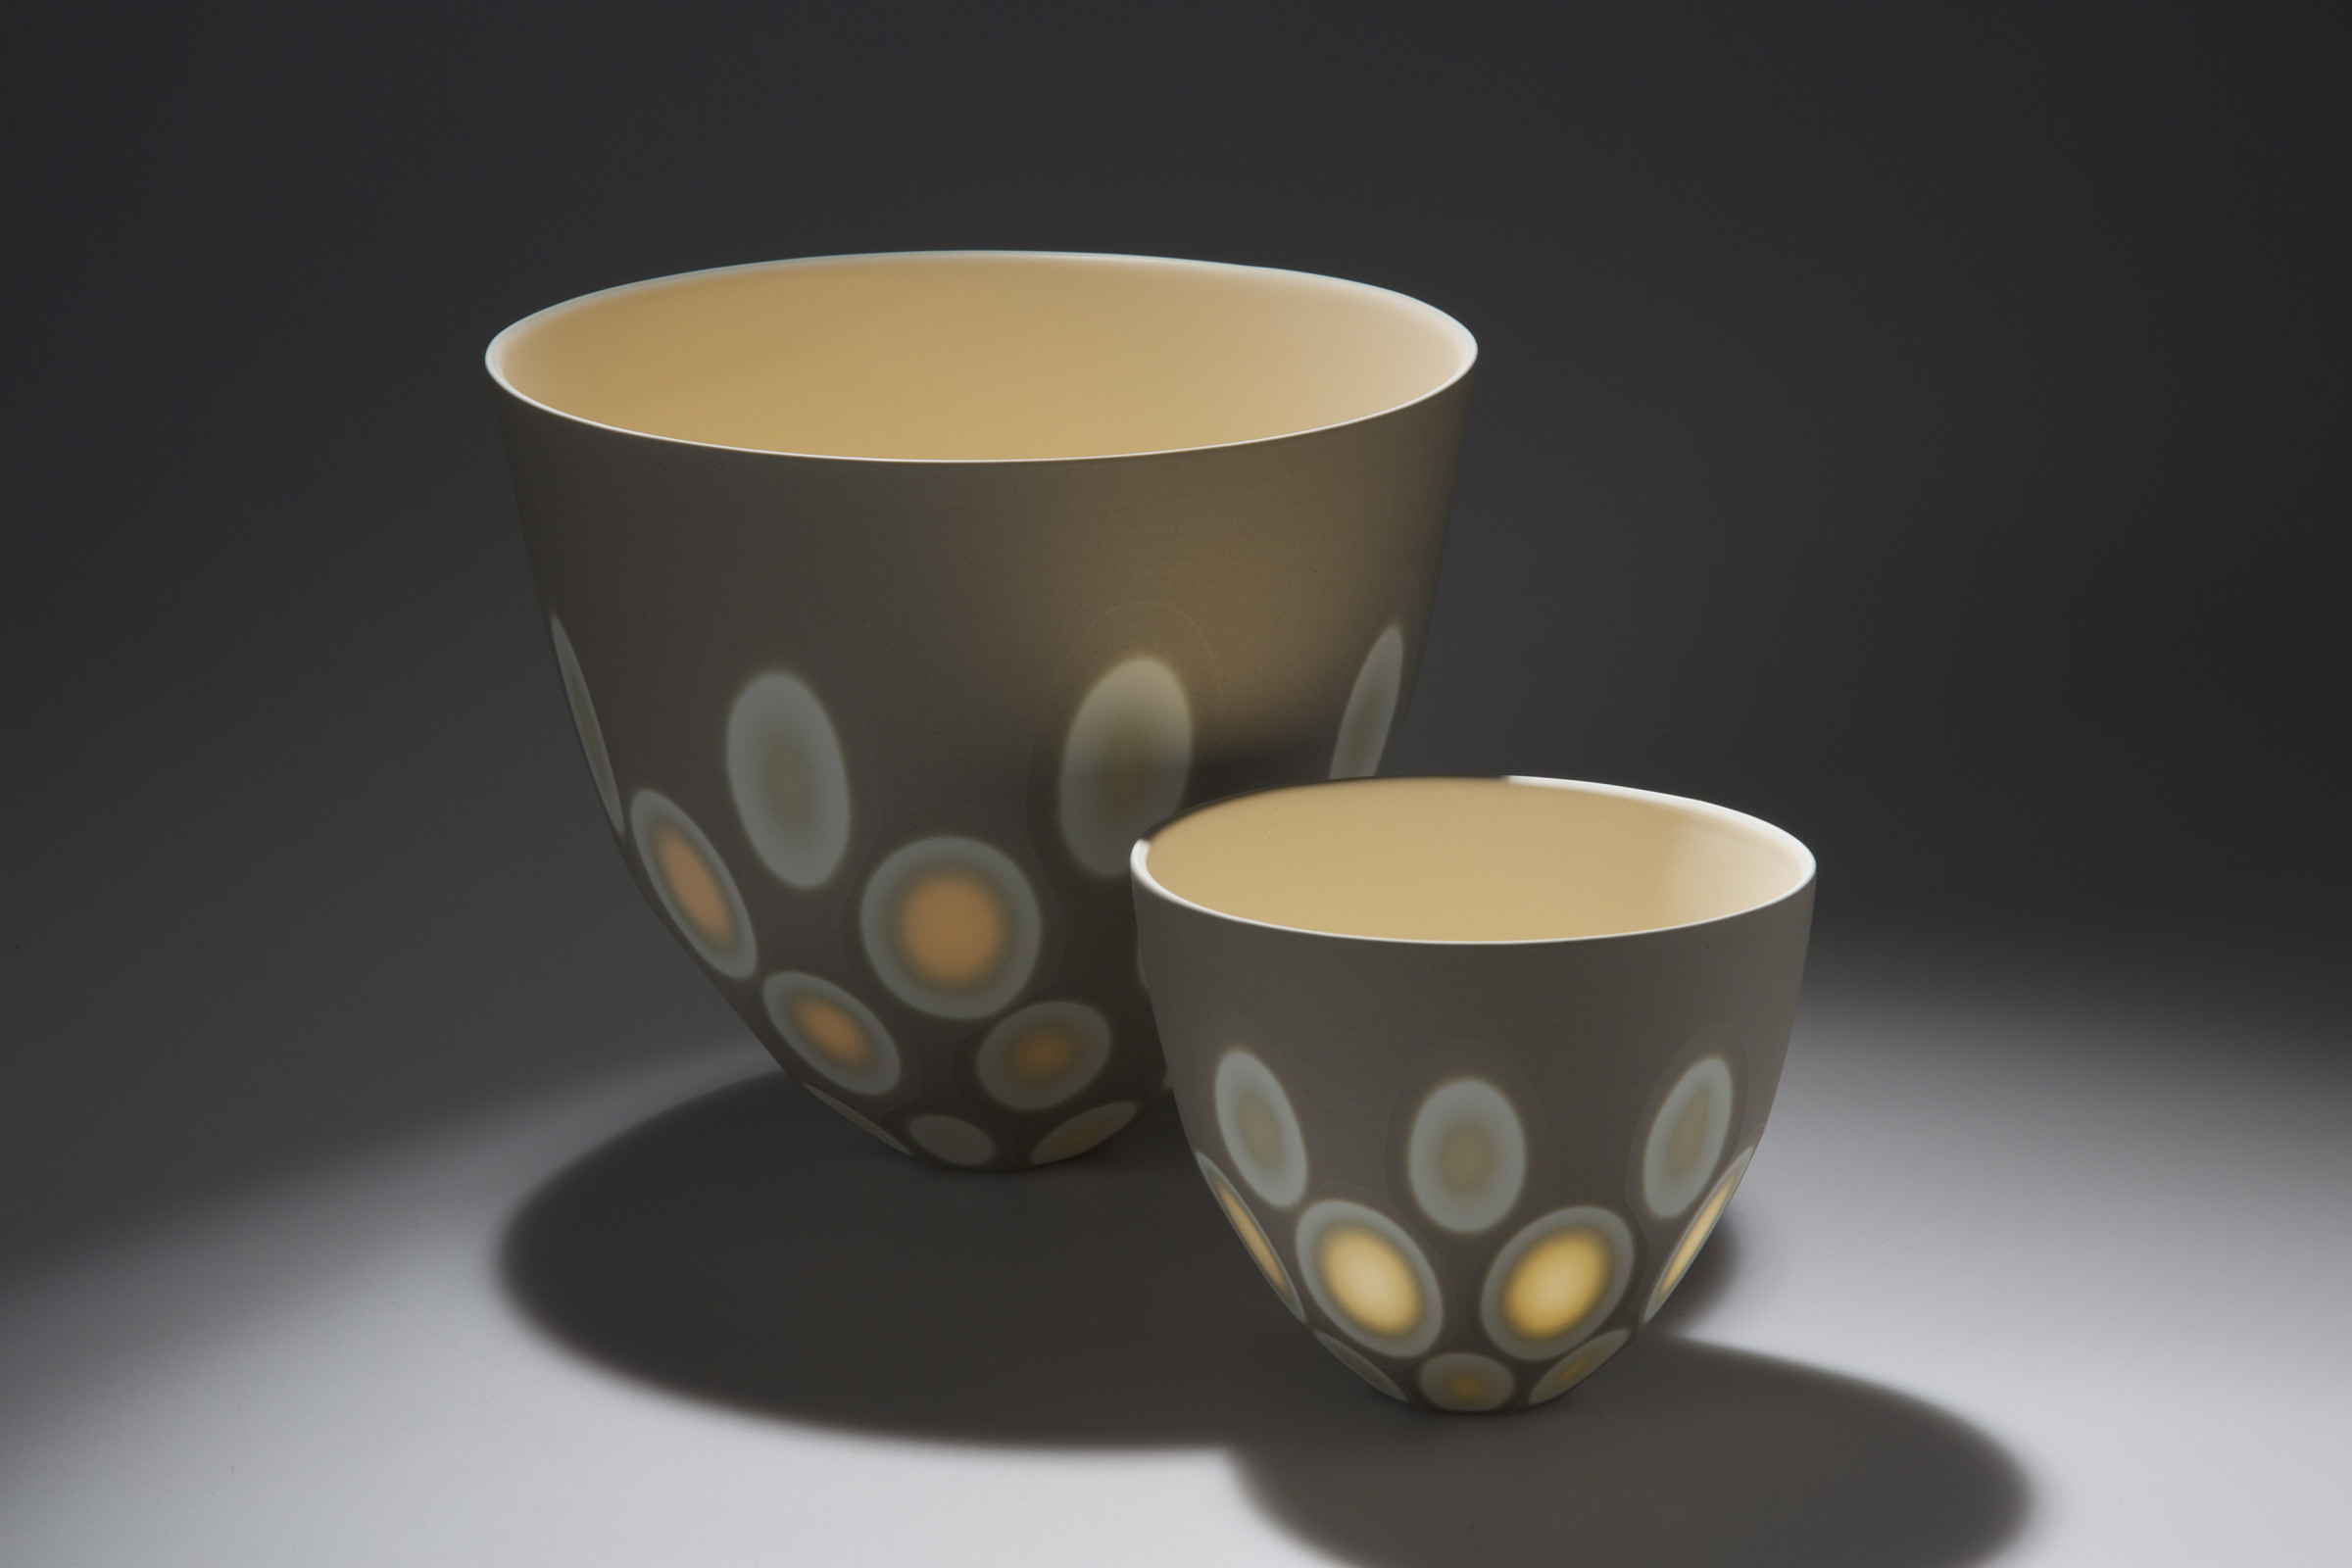 "<span class=""link fancybox-details-link""><a href=""/artists/60-sasha-wardell/works/5046-sasha-wardell-sepia-space-bowl-small-2017/"">View Detail Page</a></span><div class=""artist""><strong>Sasha Wardell</strong></div> <div class=""title""><em>Sepia Space Bowl - Small </em>, 2017</div> <div class=""dimensions"">35 cm</div><div class=""price"">£180.00</div><div class=""copyright_line"">Copyright The Artist</div>"